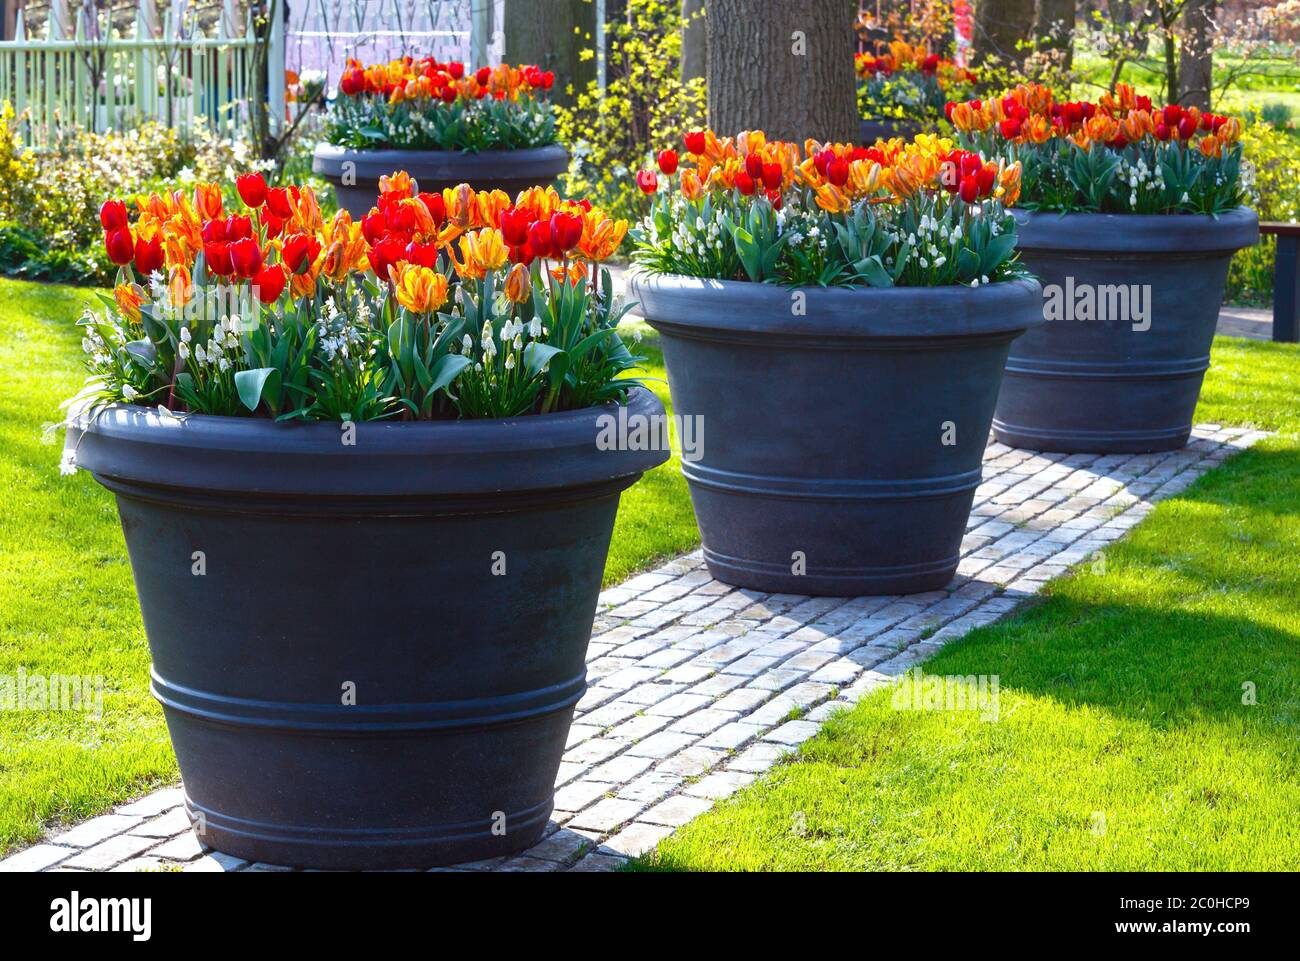 Big Flowerpots High Resolution Stock Photography And Images Alamy